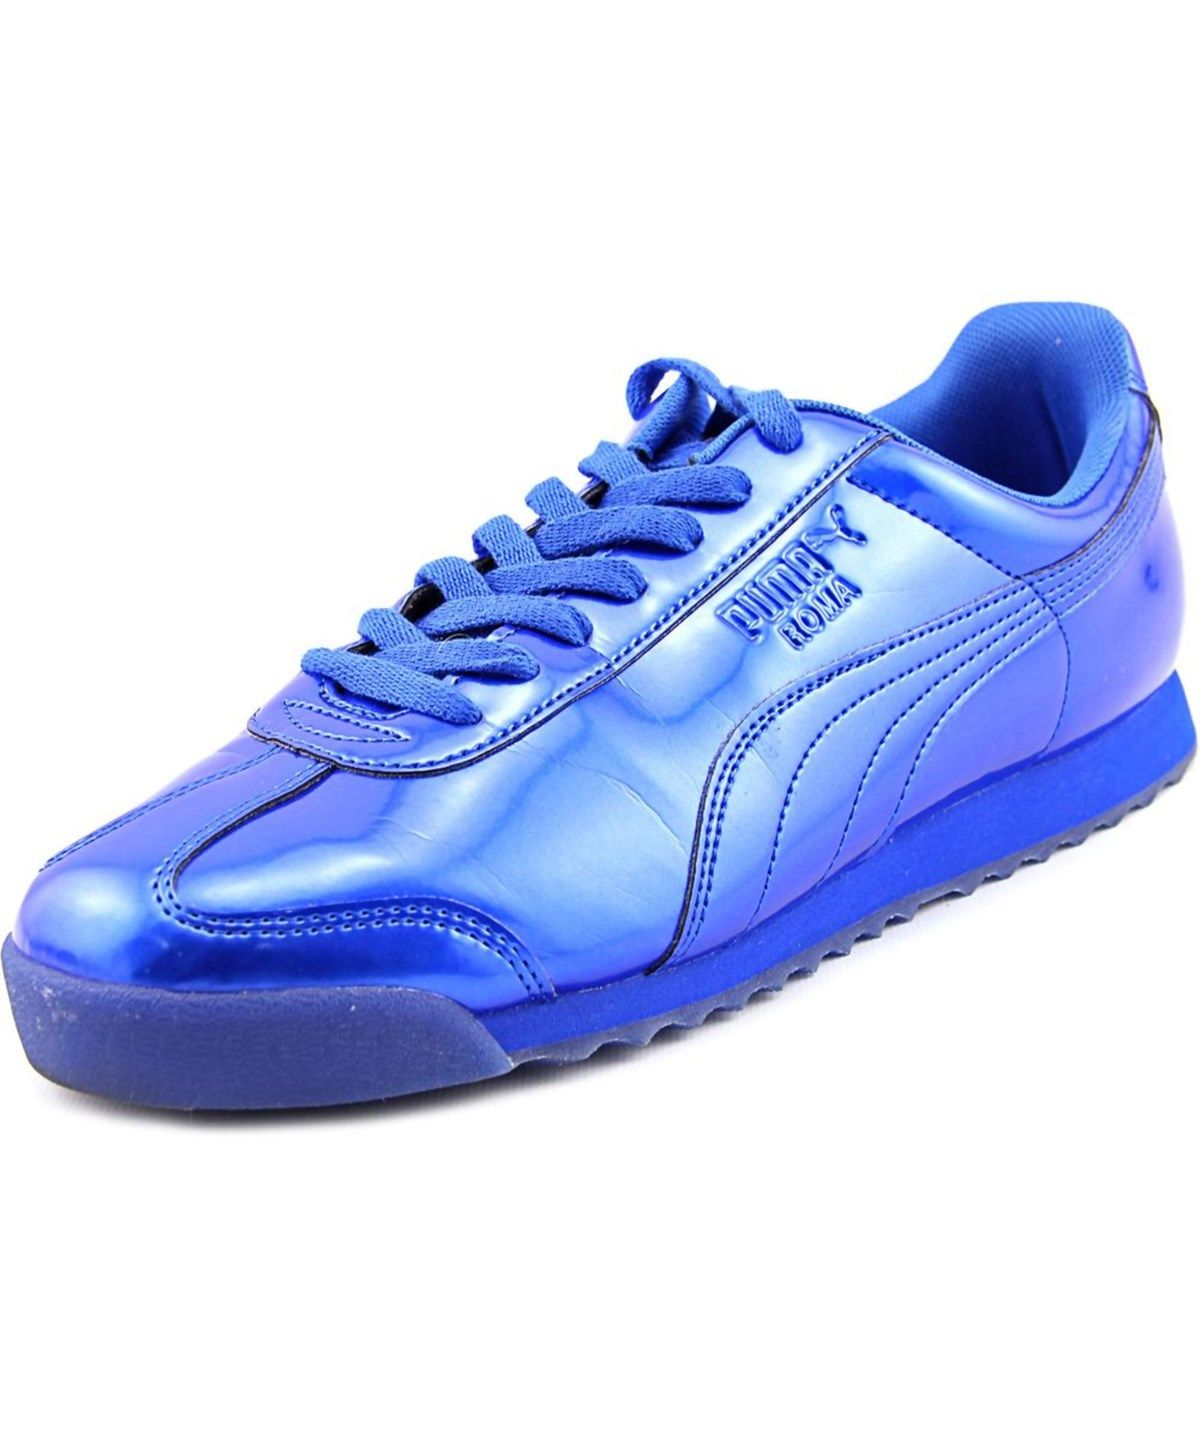 detailed look 06c06 24312 patent leather pumas